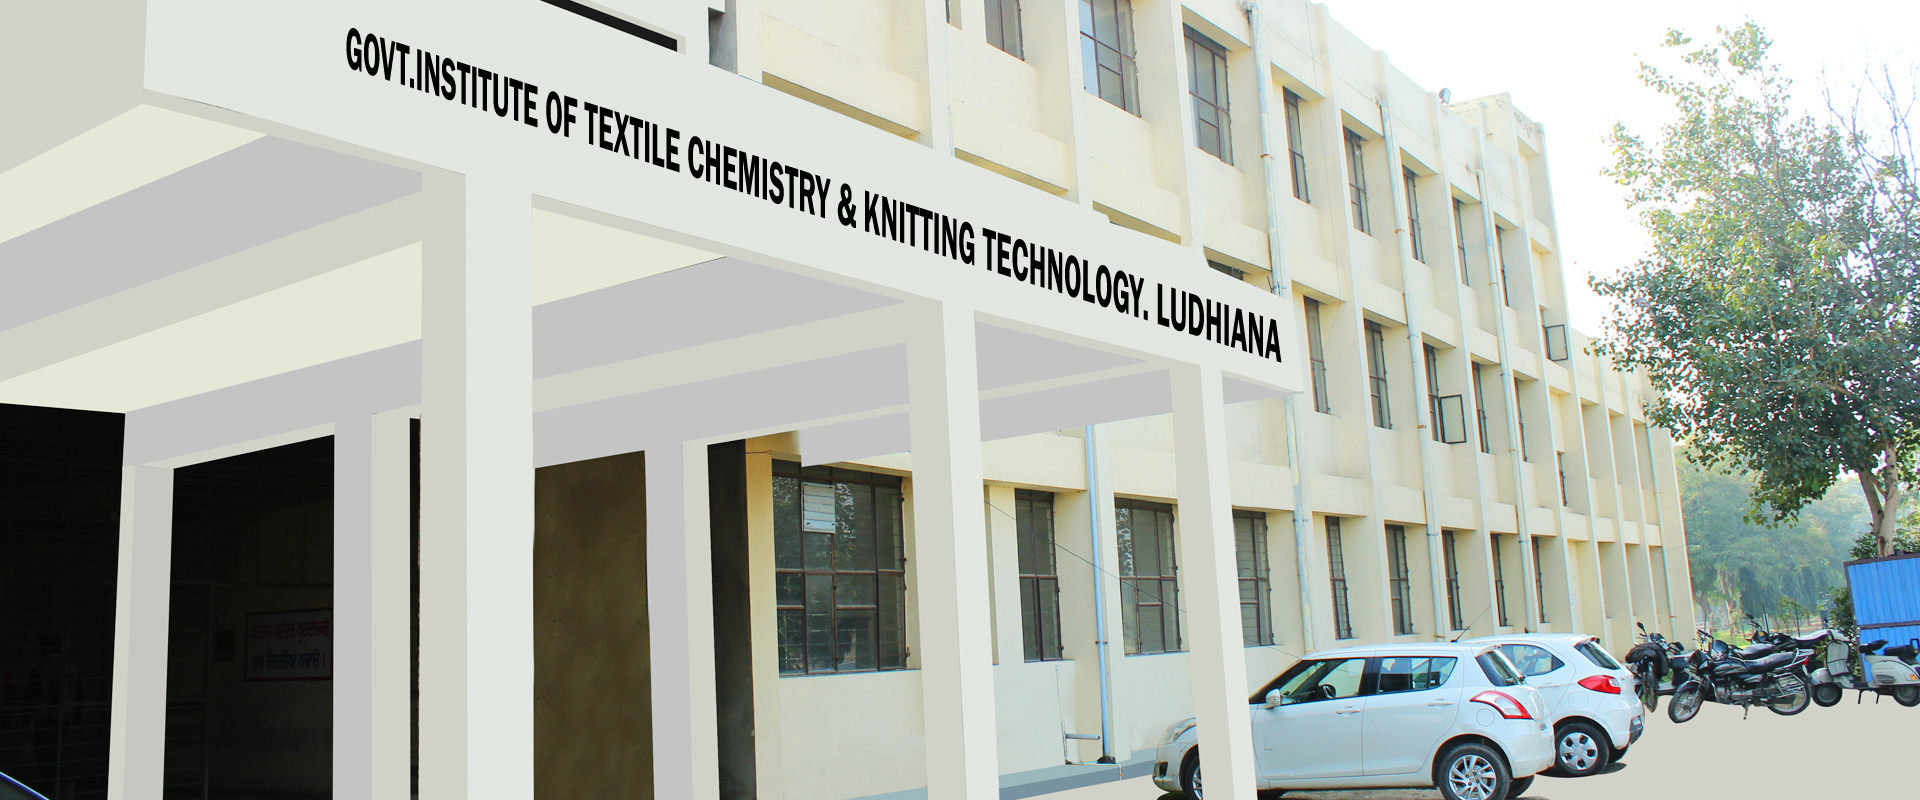 Government Institute of Textile Chemistry and Knitting Technology